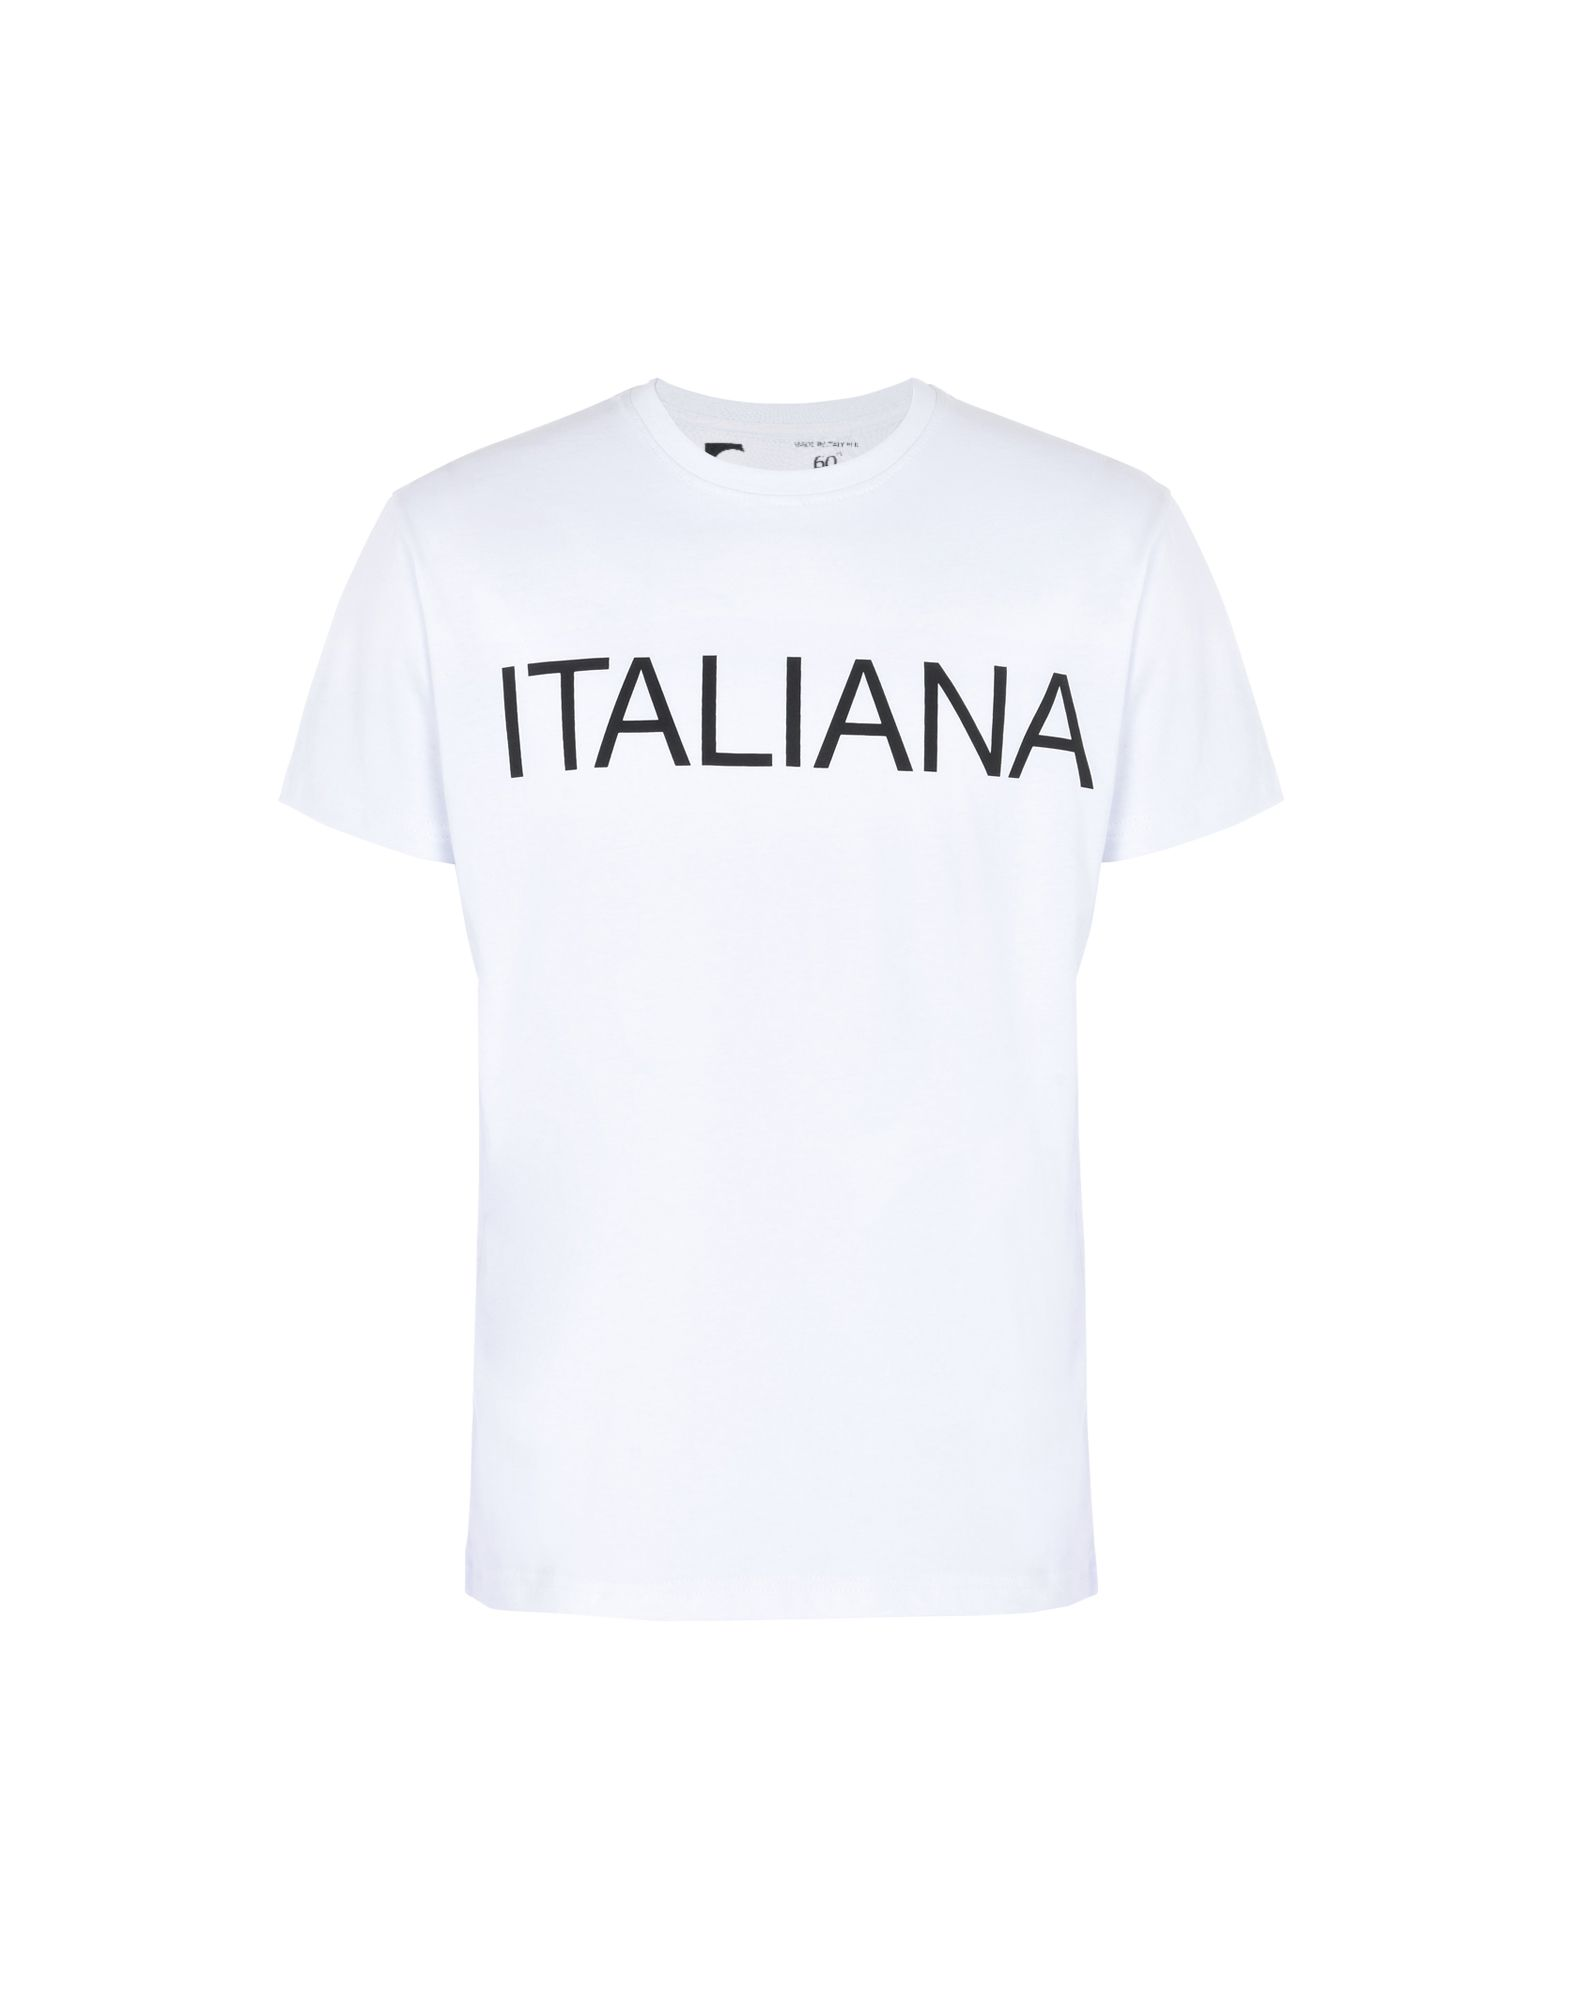 T-Shirt Italiana Italiana.  Through The Lens Of Fashion 1971-2001 - herren - 12157718XJ